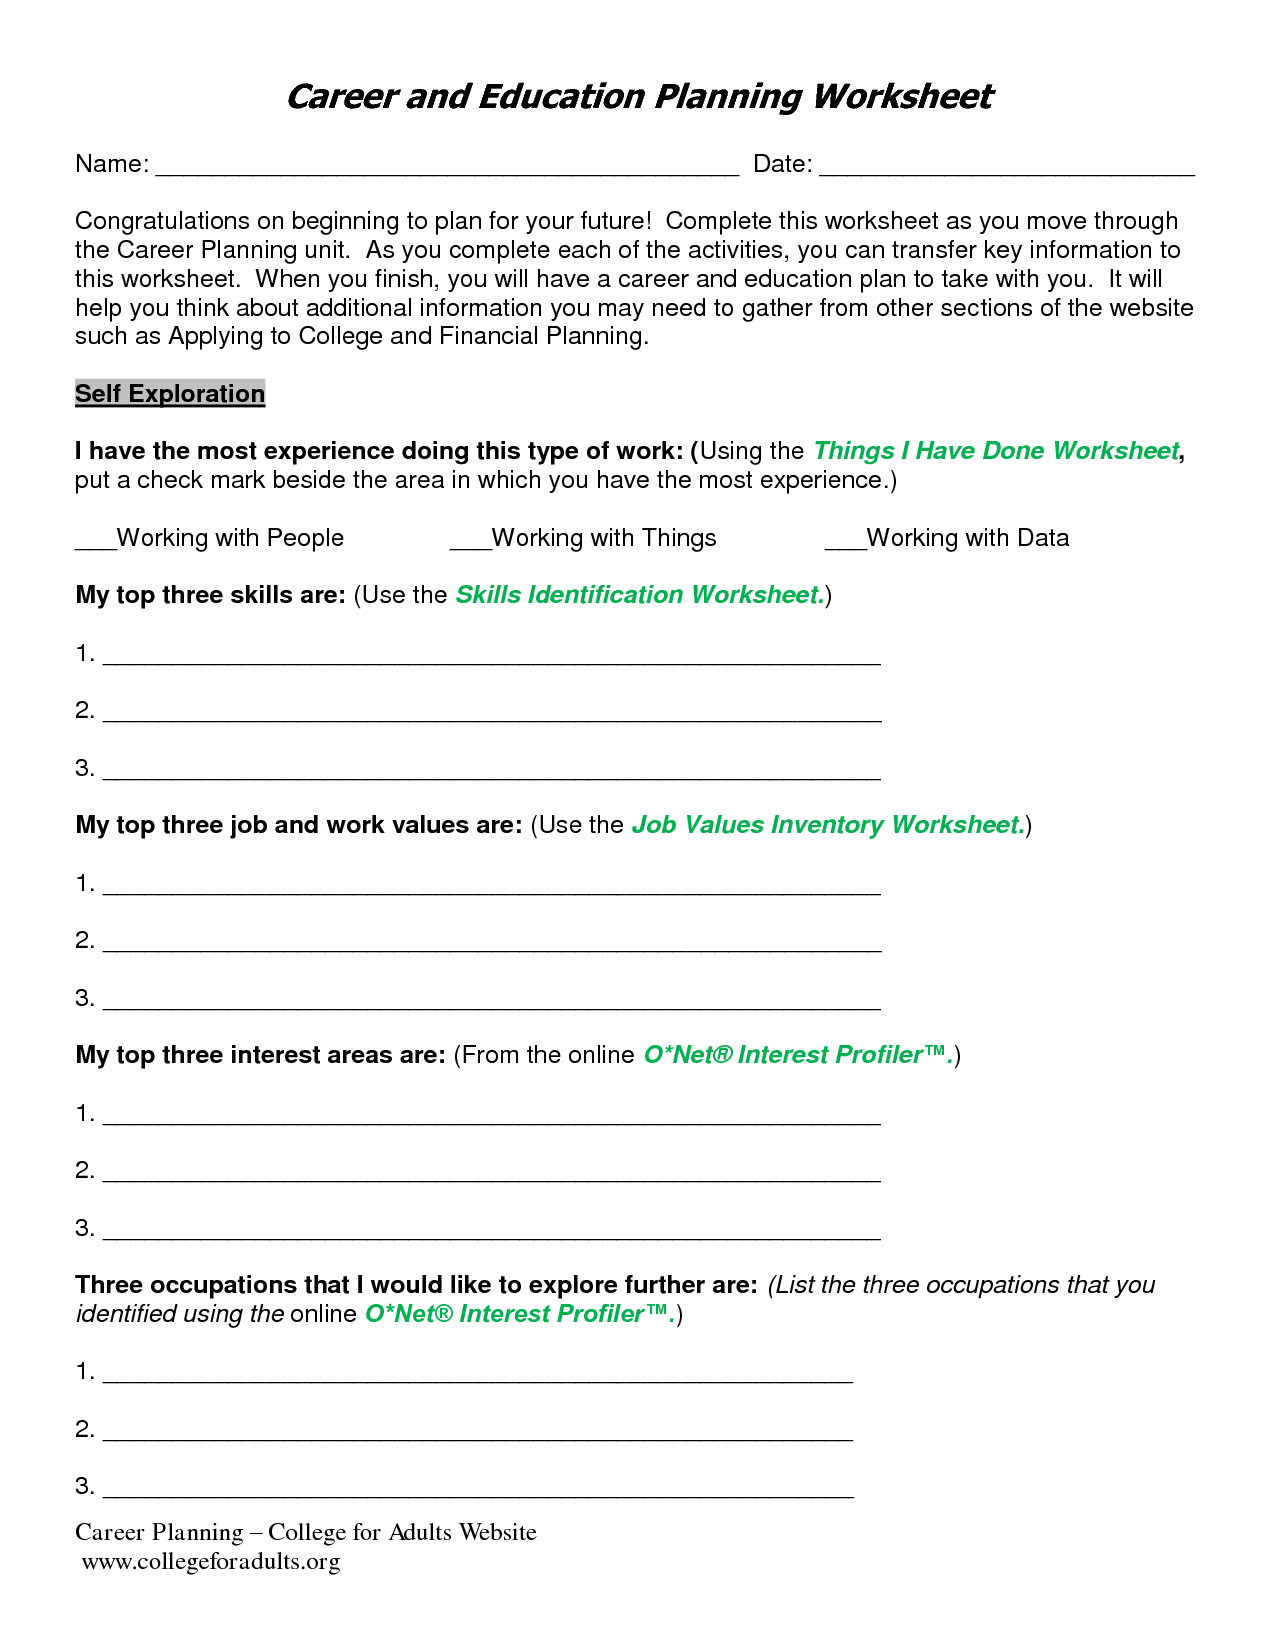 17 Best Images Of Sample Career Plan Worksheet